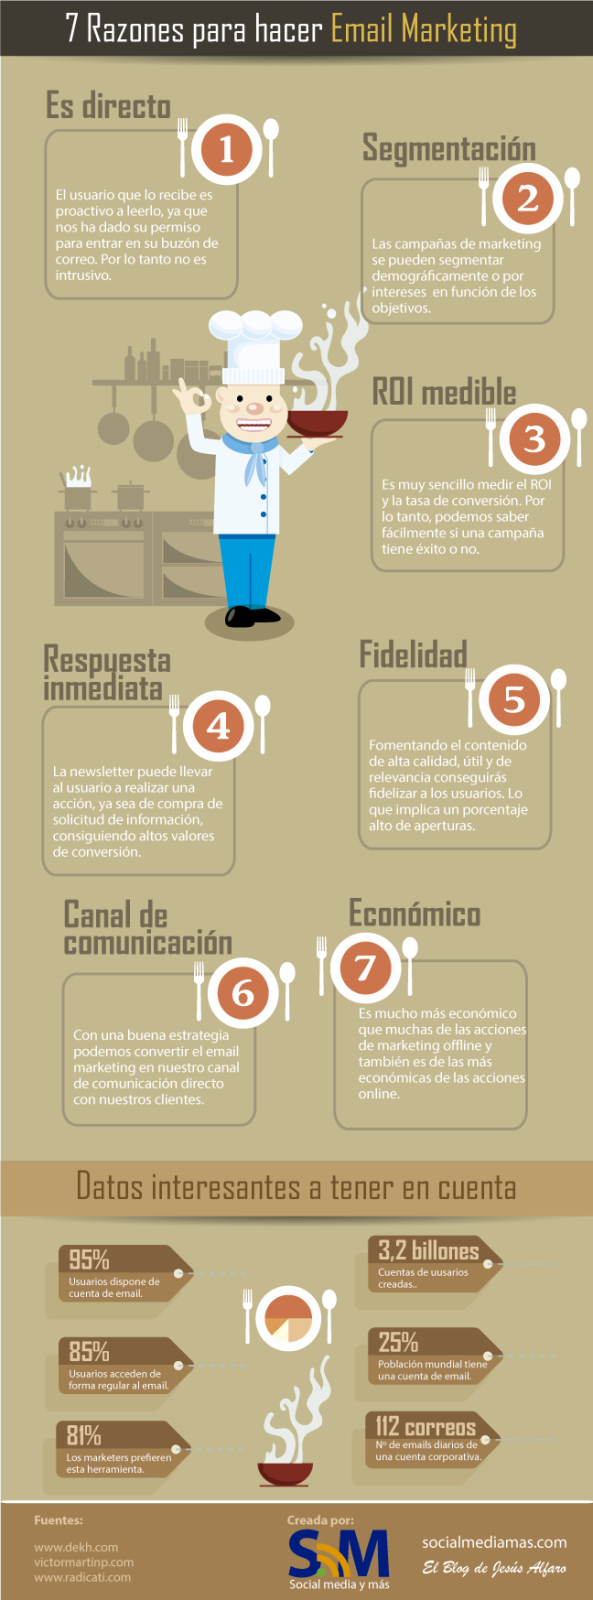 7 razones para hacer email marketing #infografia #infographic #marketing